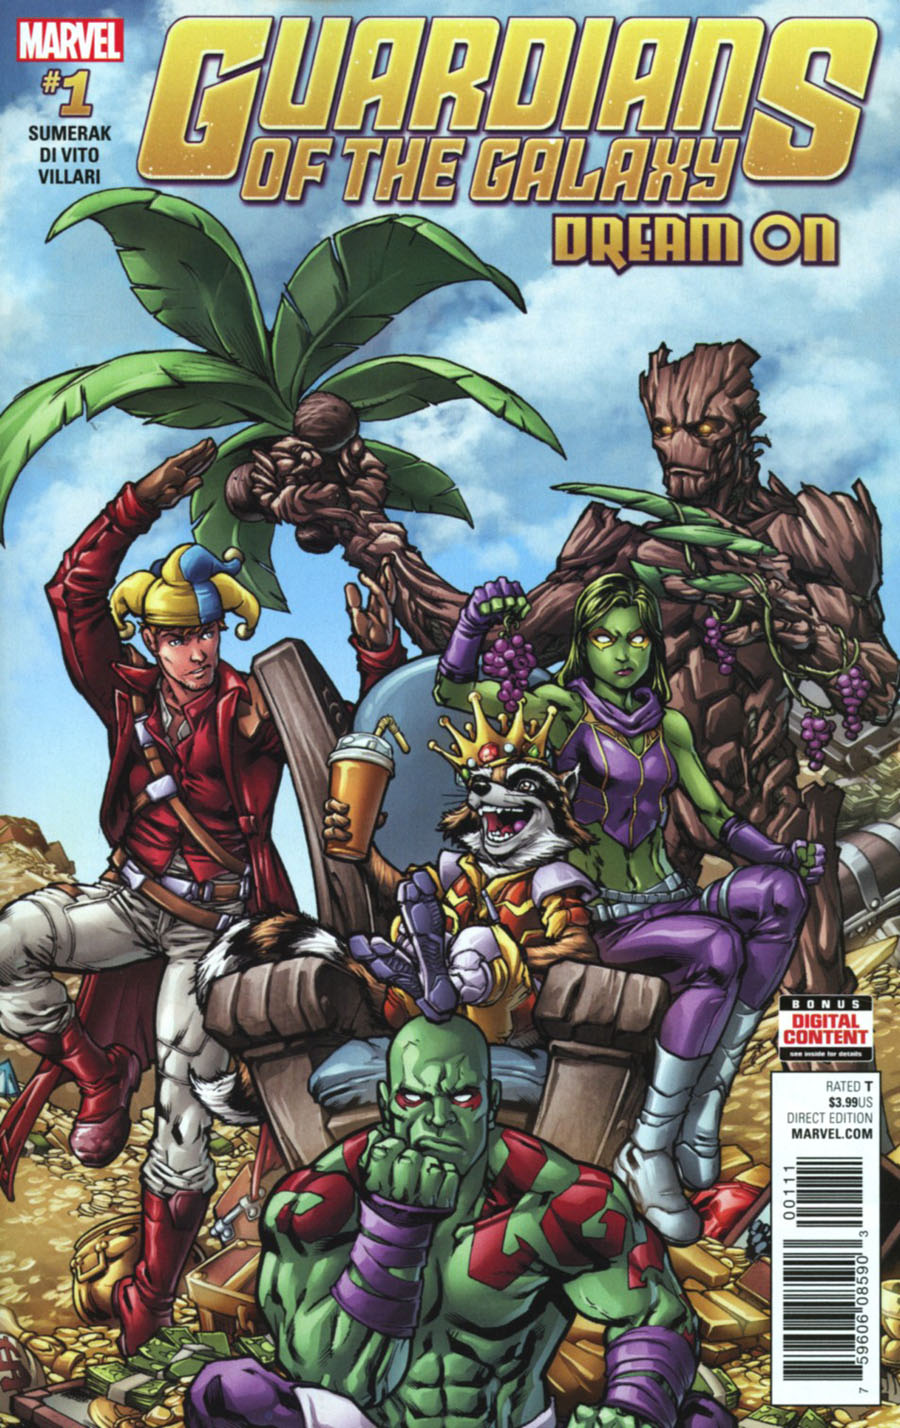 Guardians Of The Galaxy Dream On #1